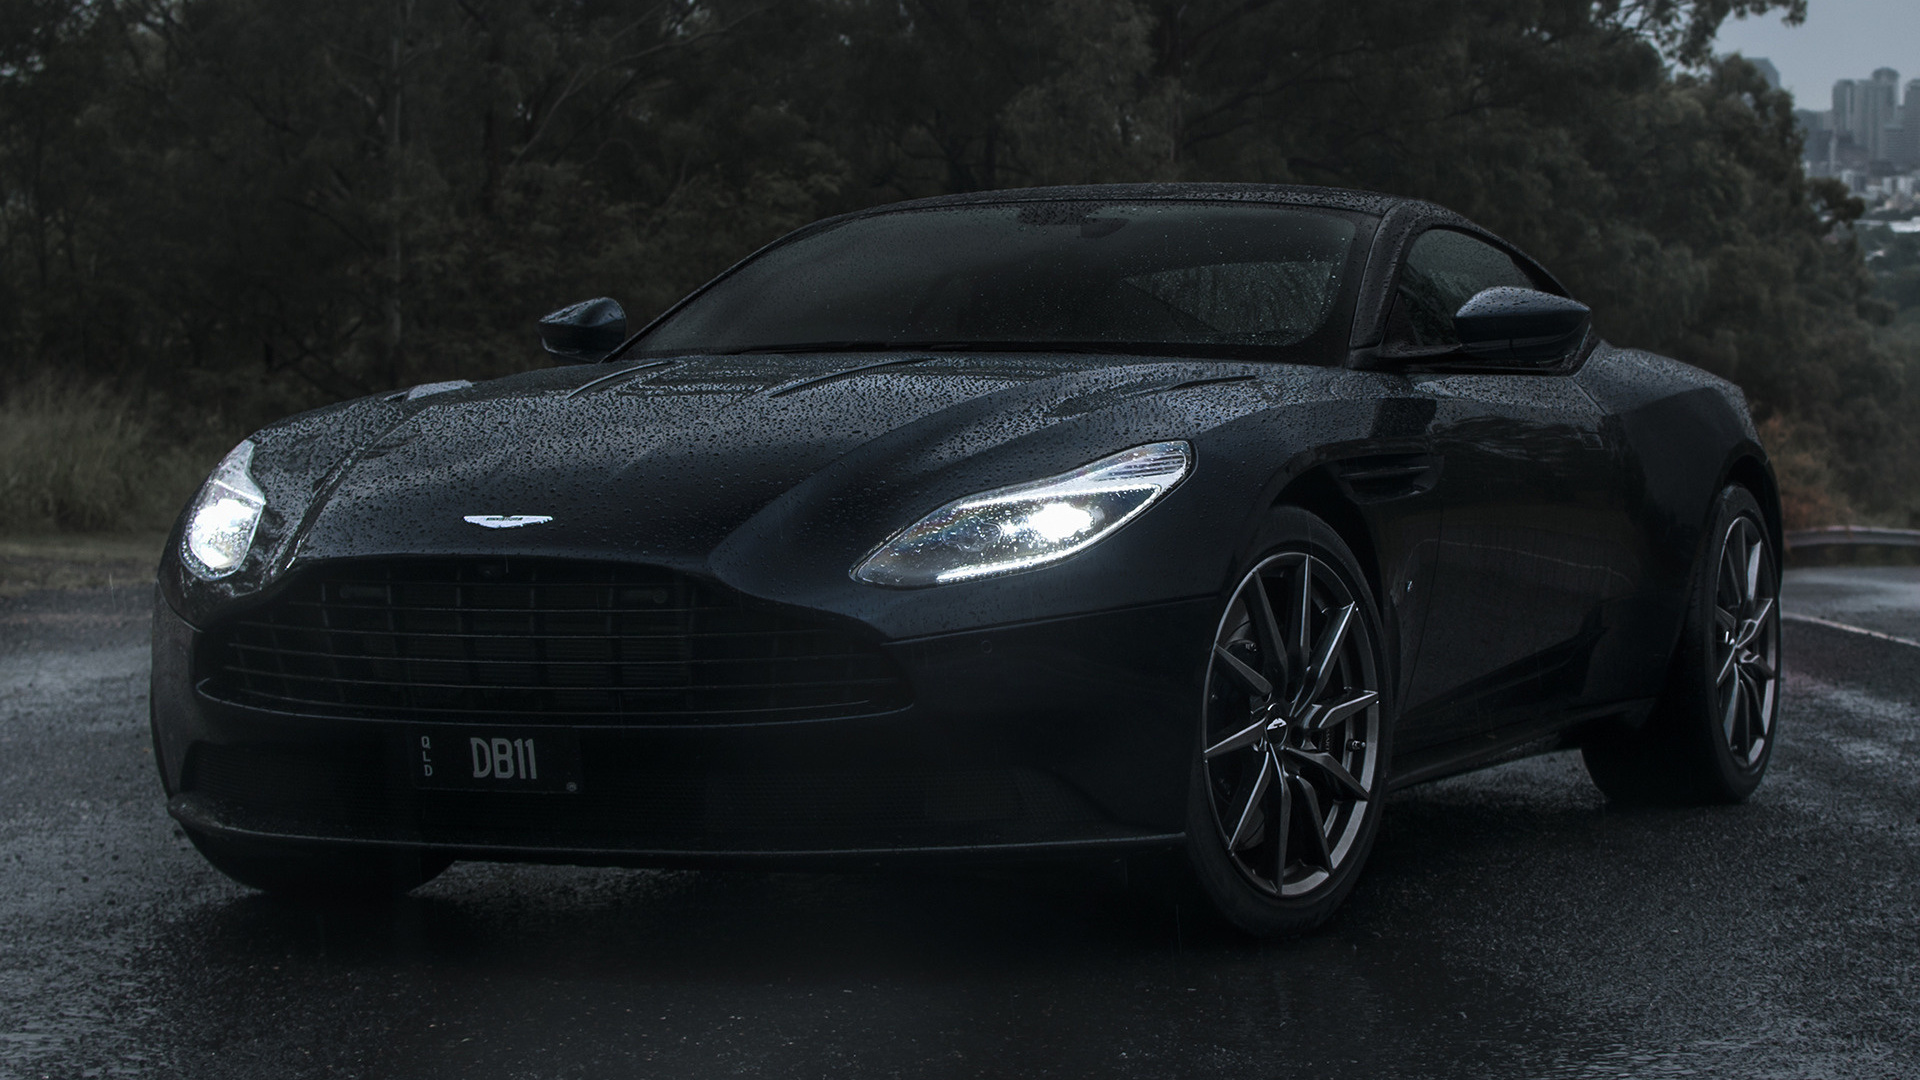 aston martin db11 (2017) au wallpapers and hd images - car pixel